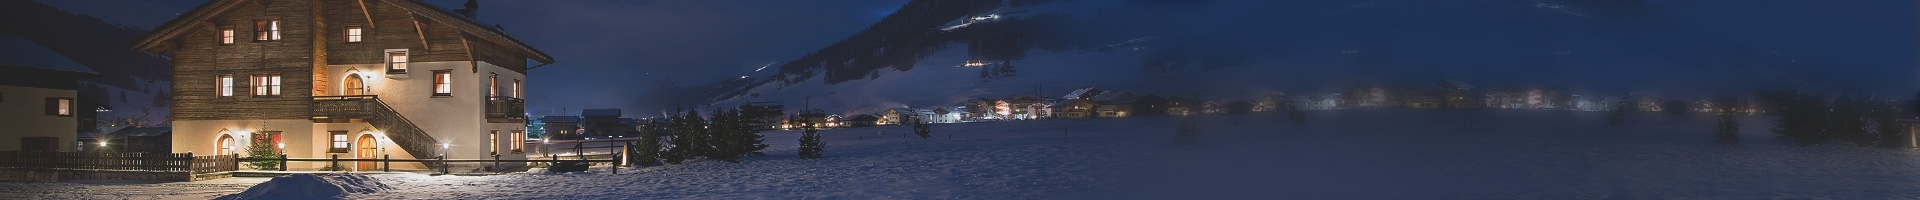 Chalet la Marinella - Apartments in Livigno